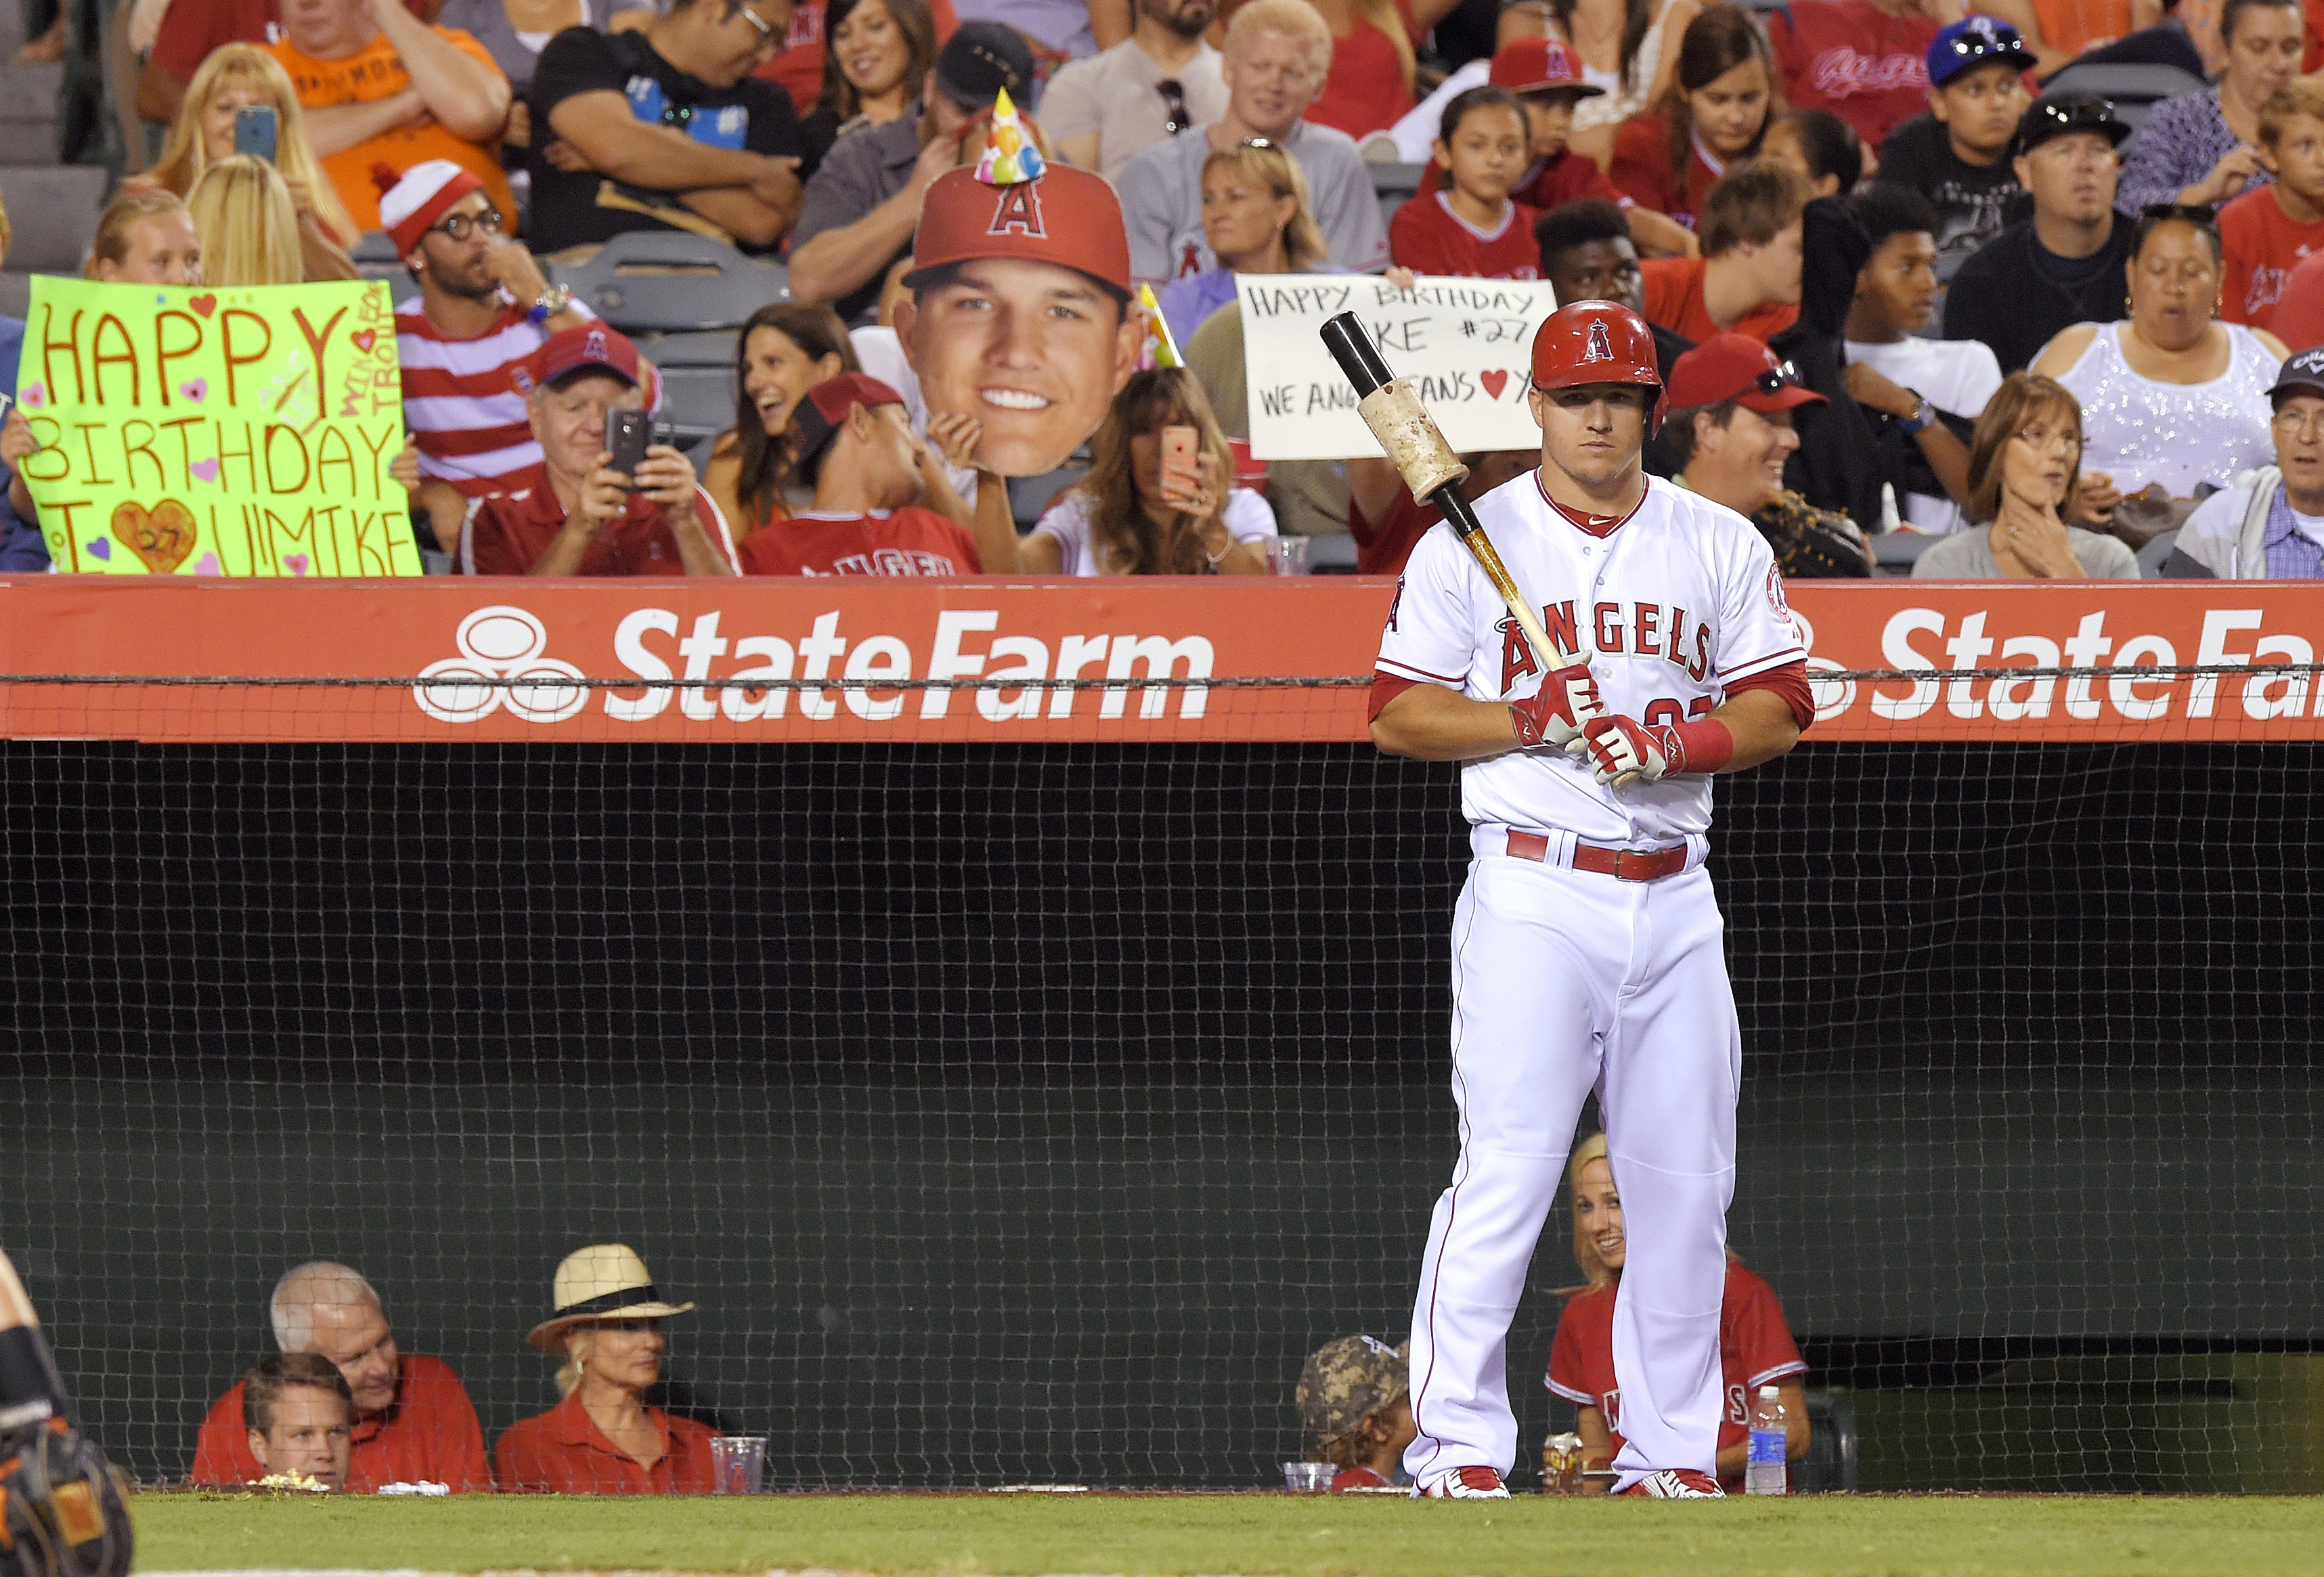 Los Angeles Angels' Mike Trout, right, gets ready to bat as fans hold up signs for his birthday during the fourth inning of the Angels' baseball game against the Baltimore Orioles, Friday, Aug. 7, 2015, in Anaheim, Calif. (AP Photo/Mark J. Terrill)